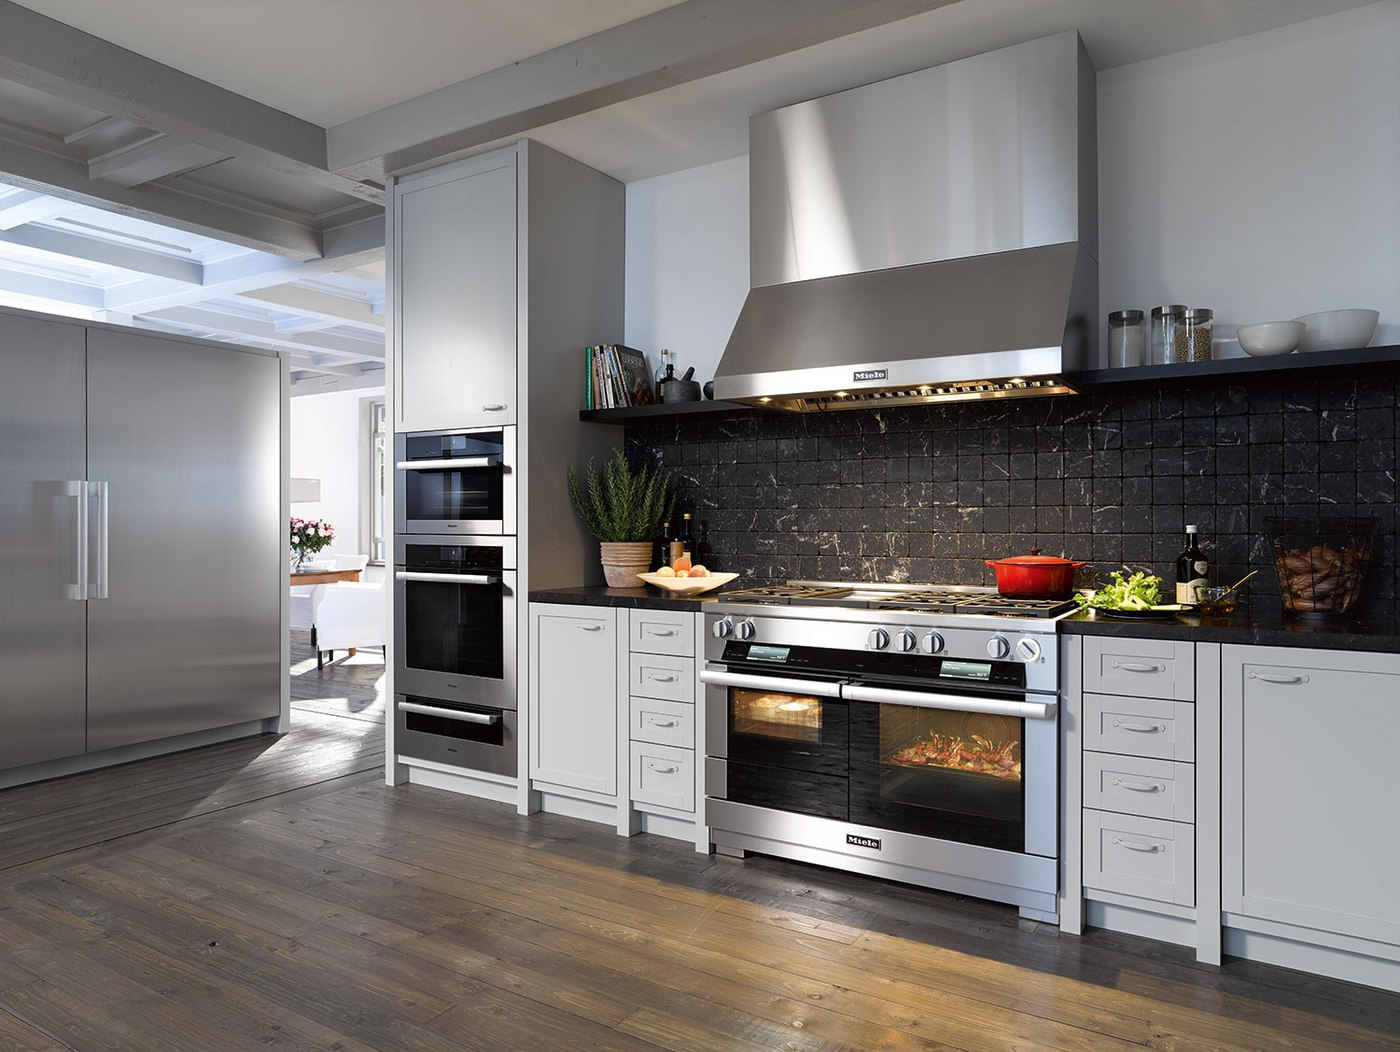 miele kitchen most reliable